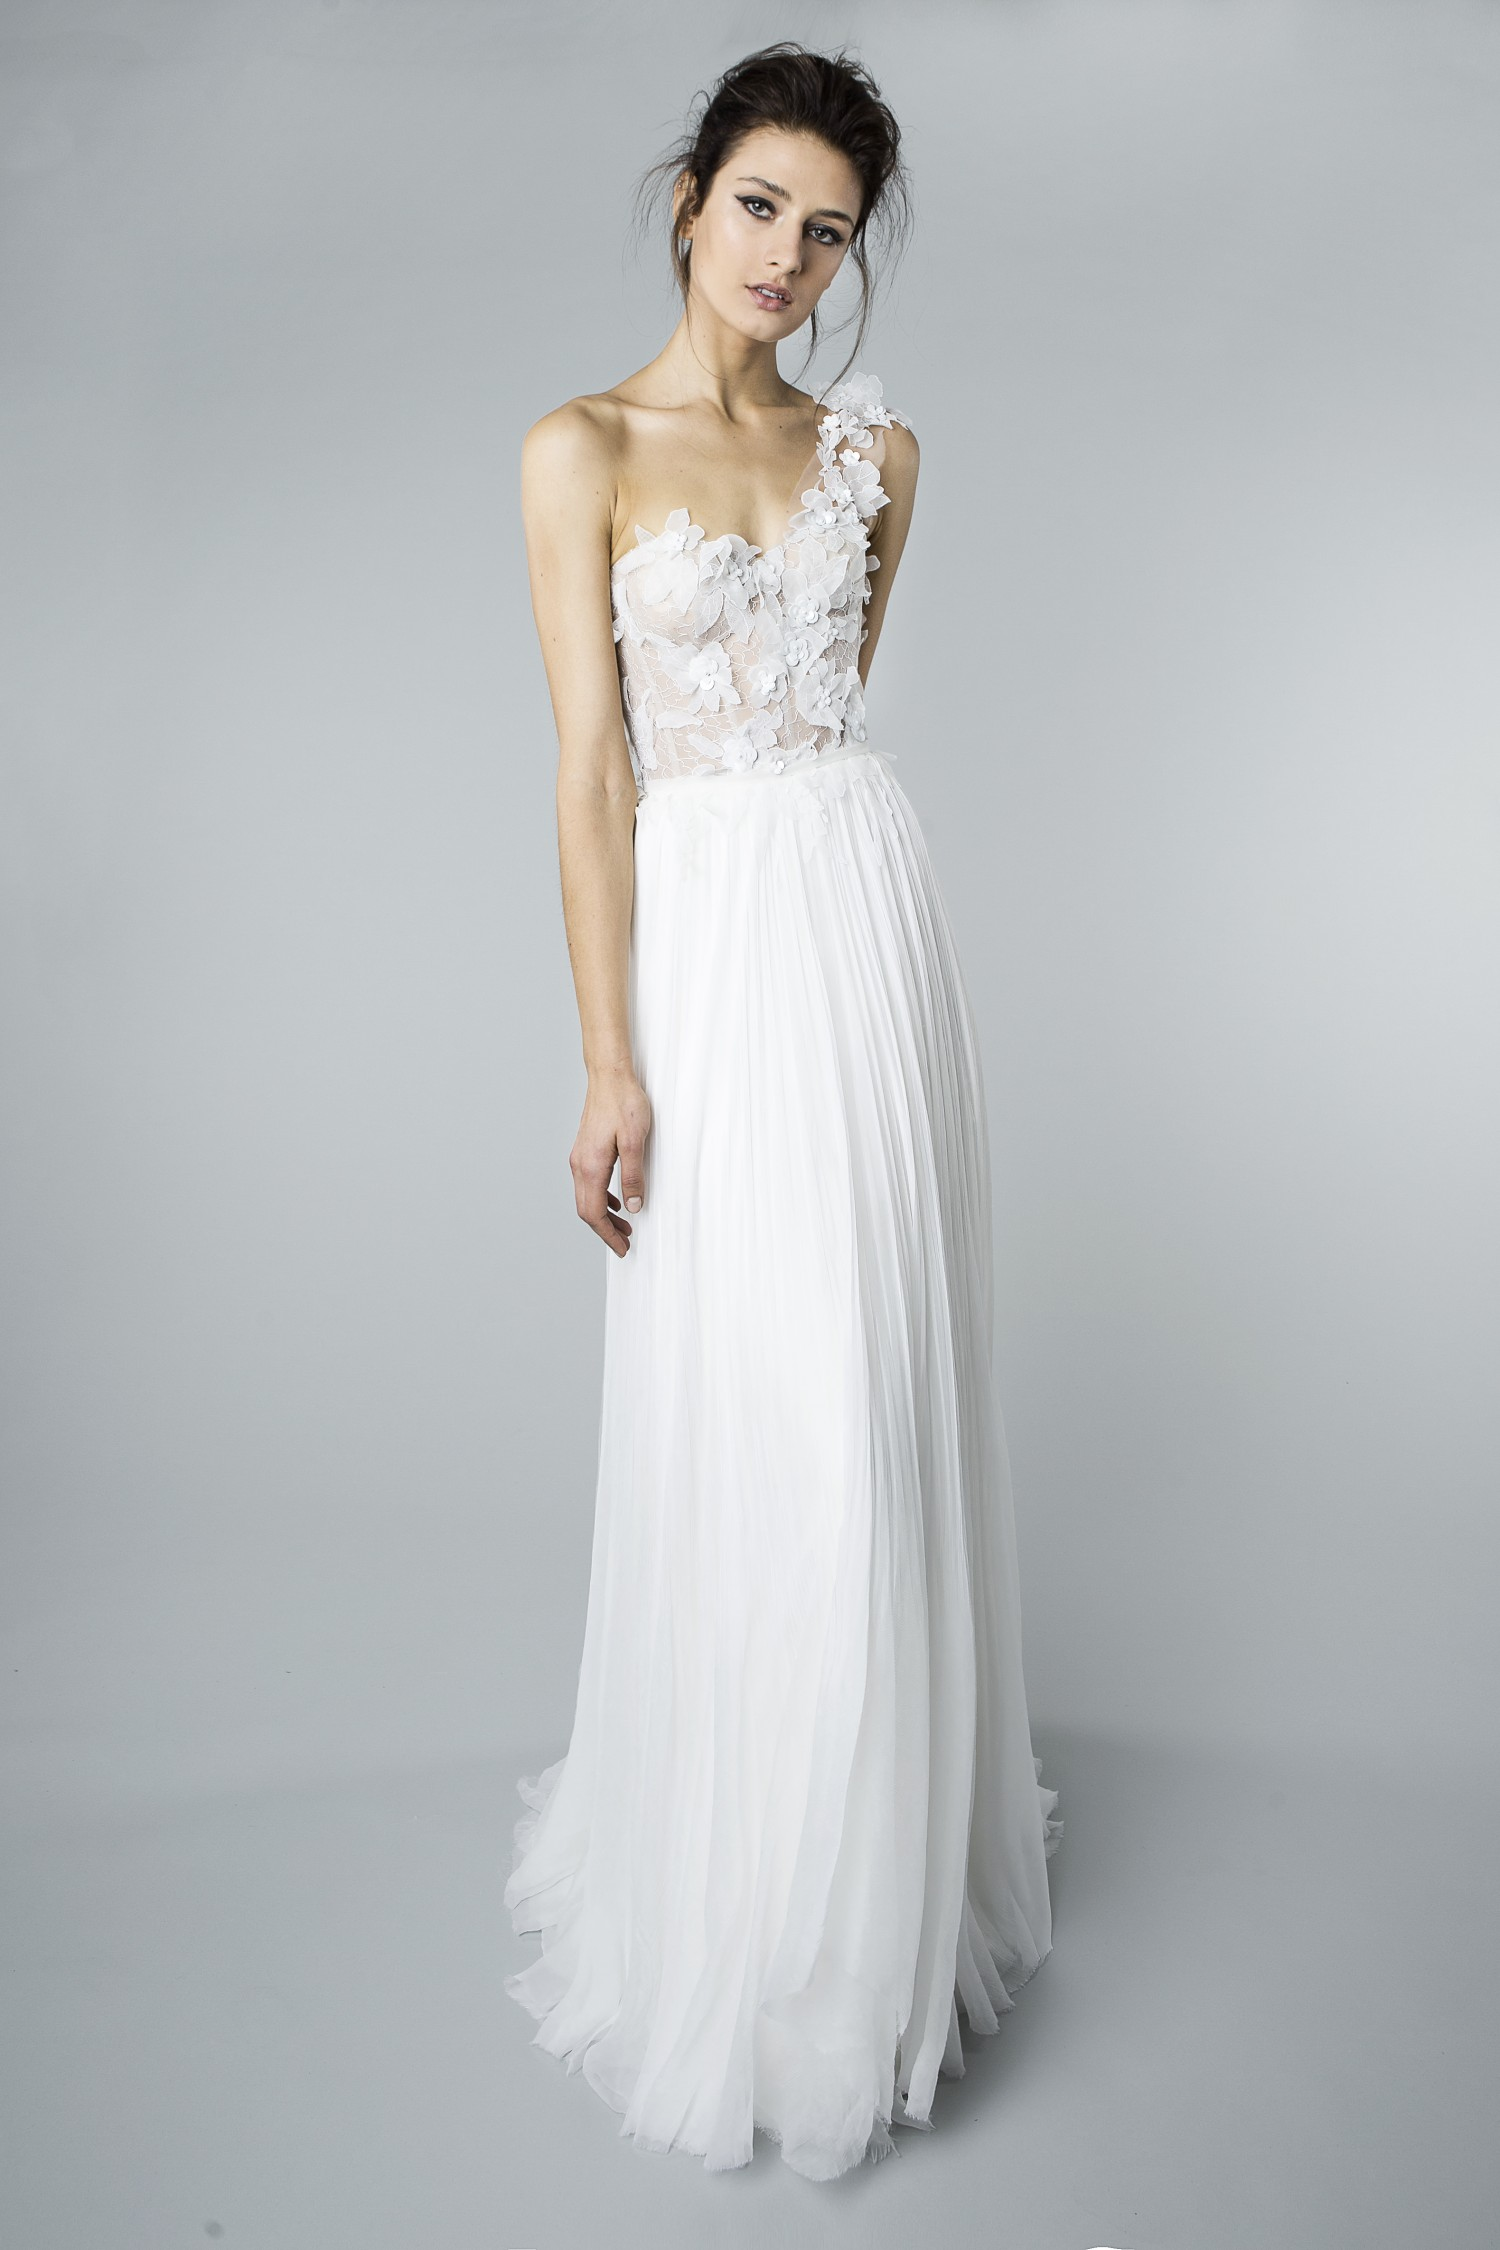 10 Dresses Perfect For A Beach Wedding | Hawaii Wedding Gown ...